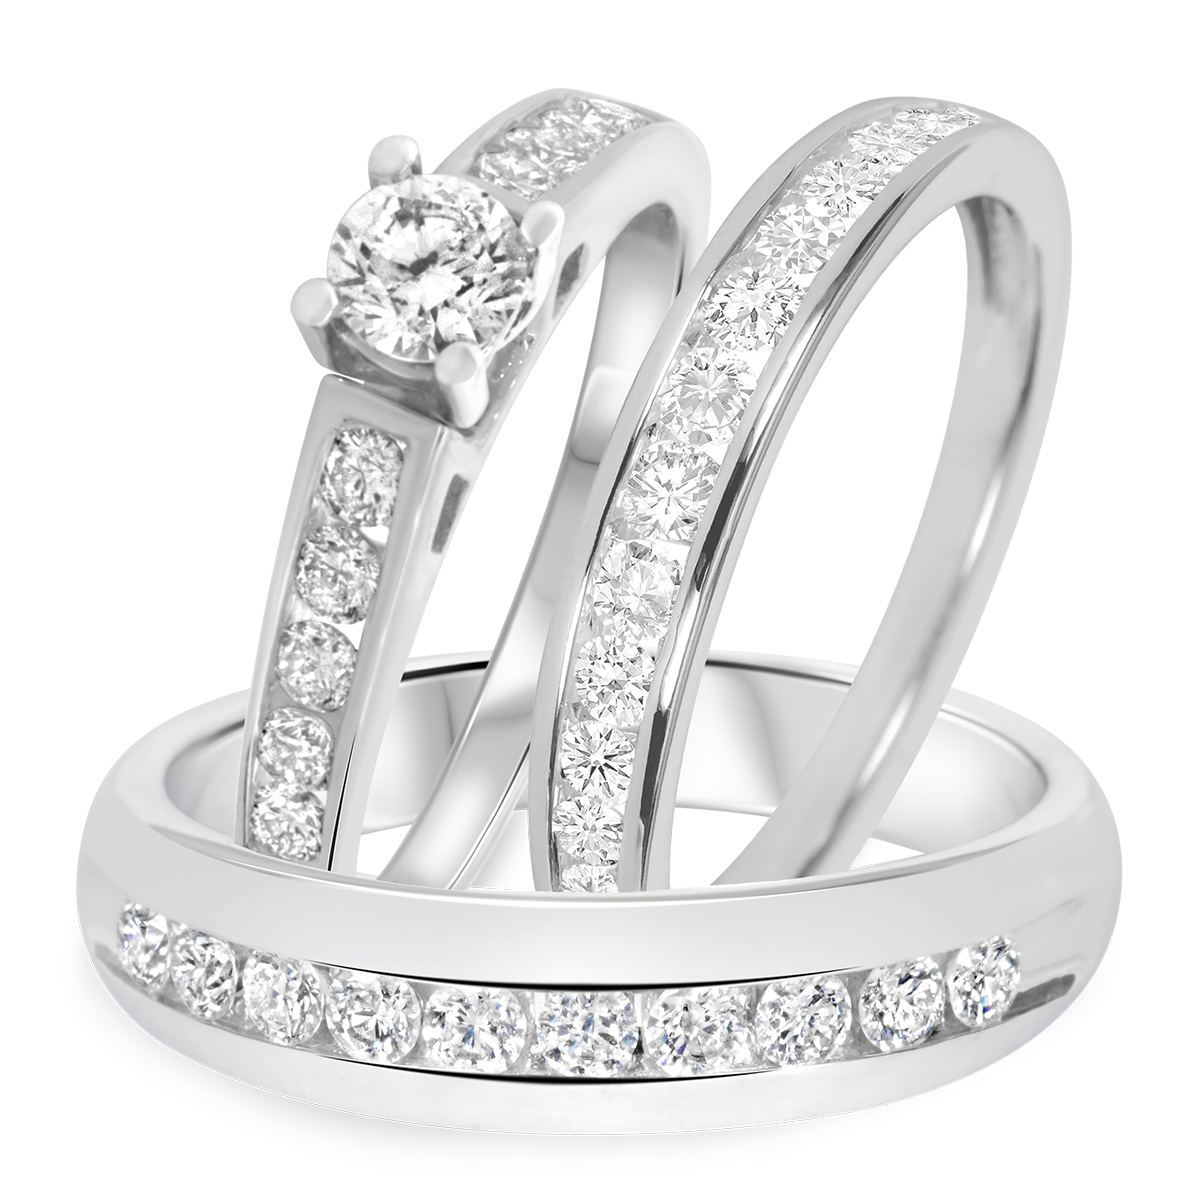 tw diamond trio matching wedding ring set 14k white gold - Wedding Rings Sets For His And Her